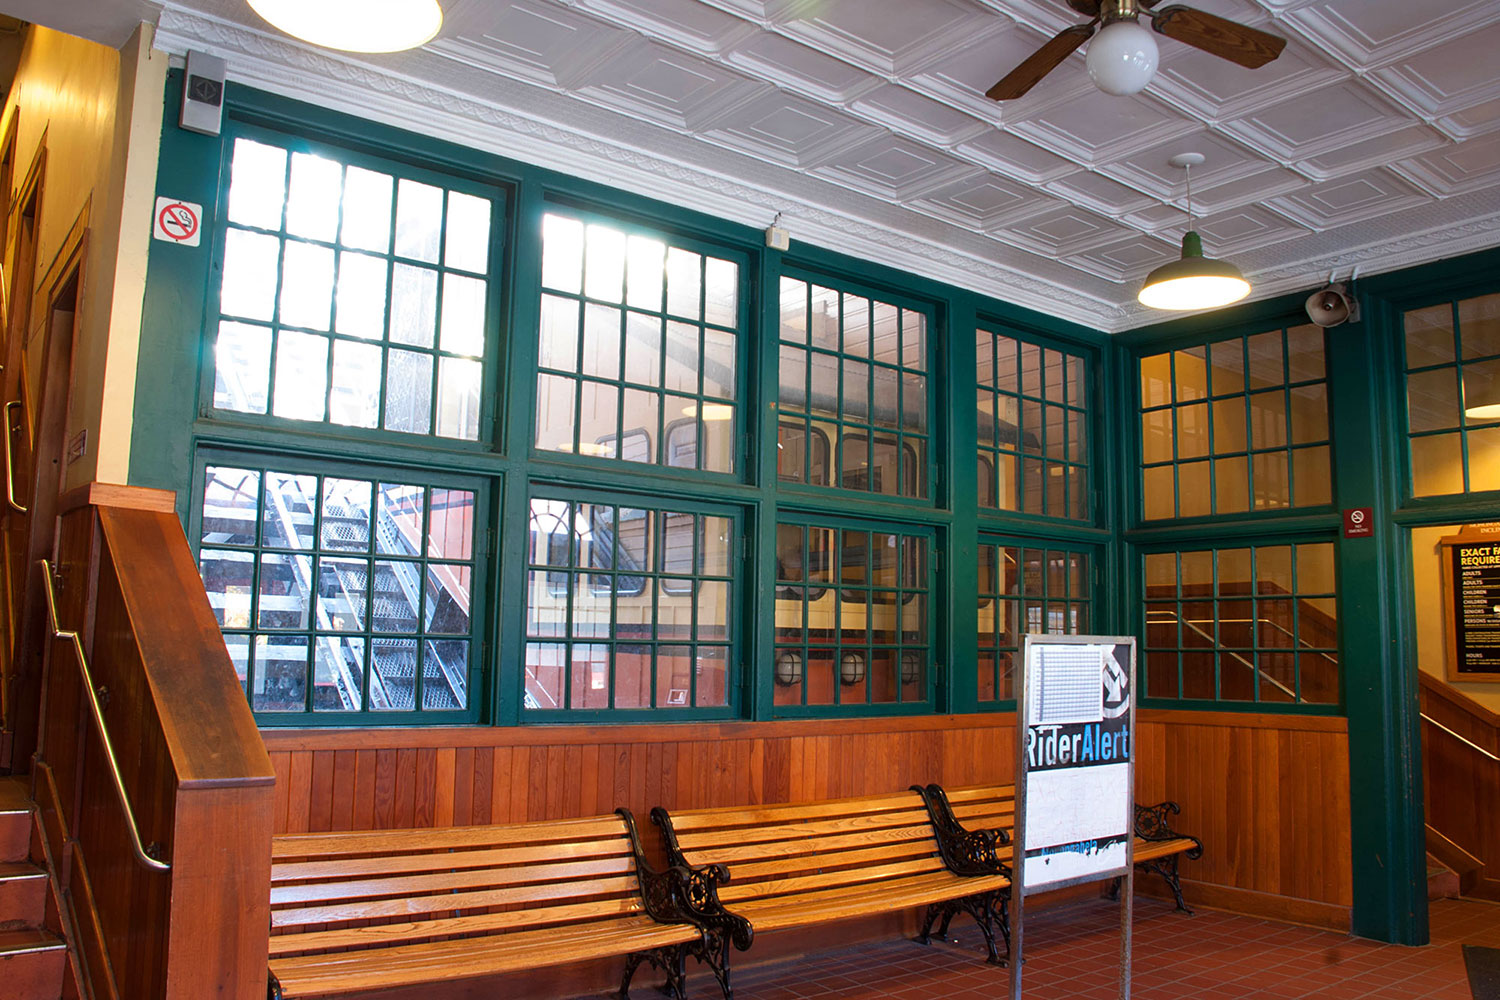 Lower Lobby with Window to Tracks